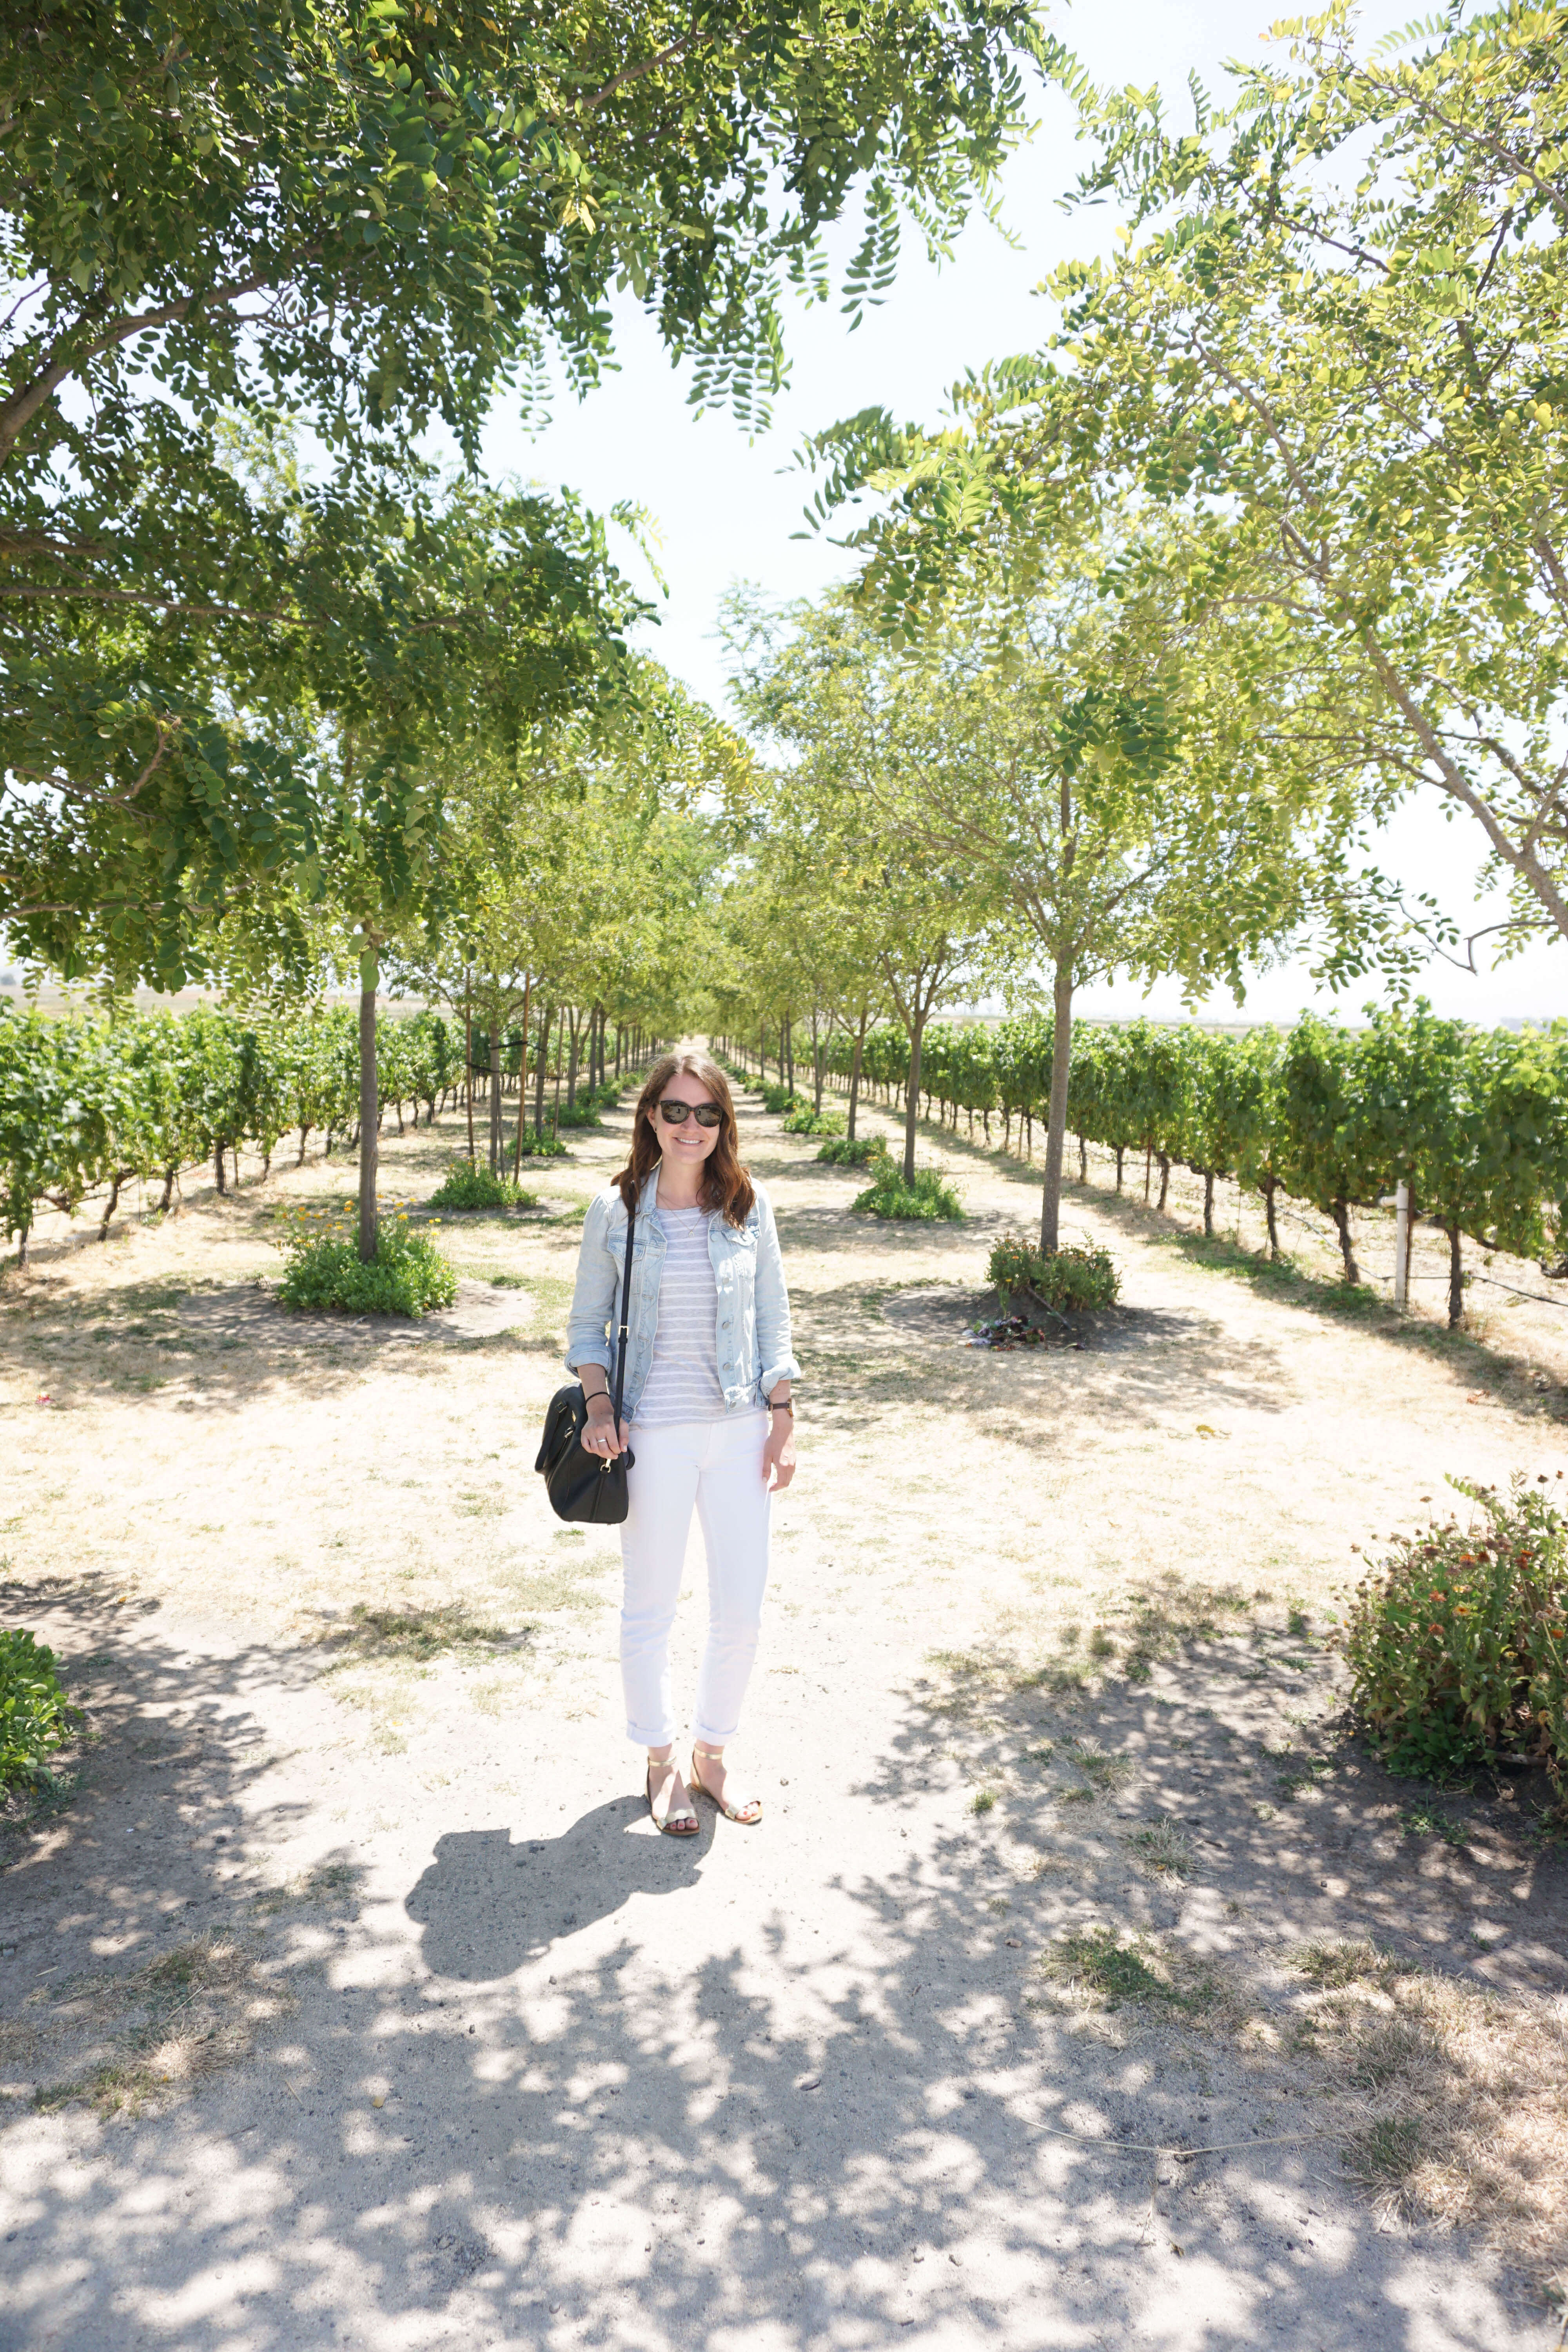 Vacation, here I come! What to eat, drink, and do in Napa Valley.